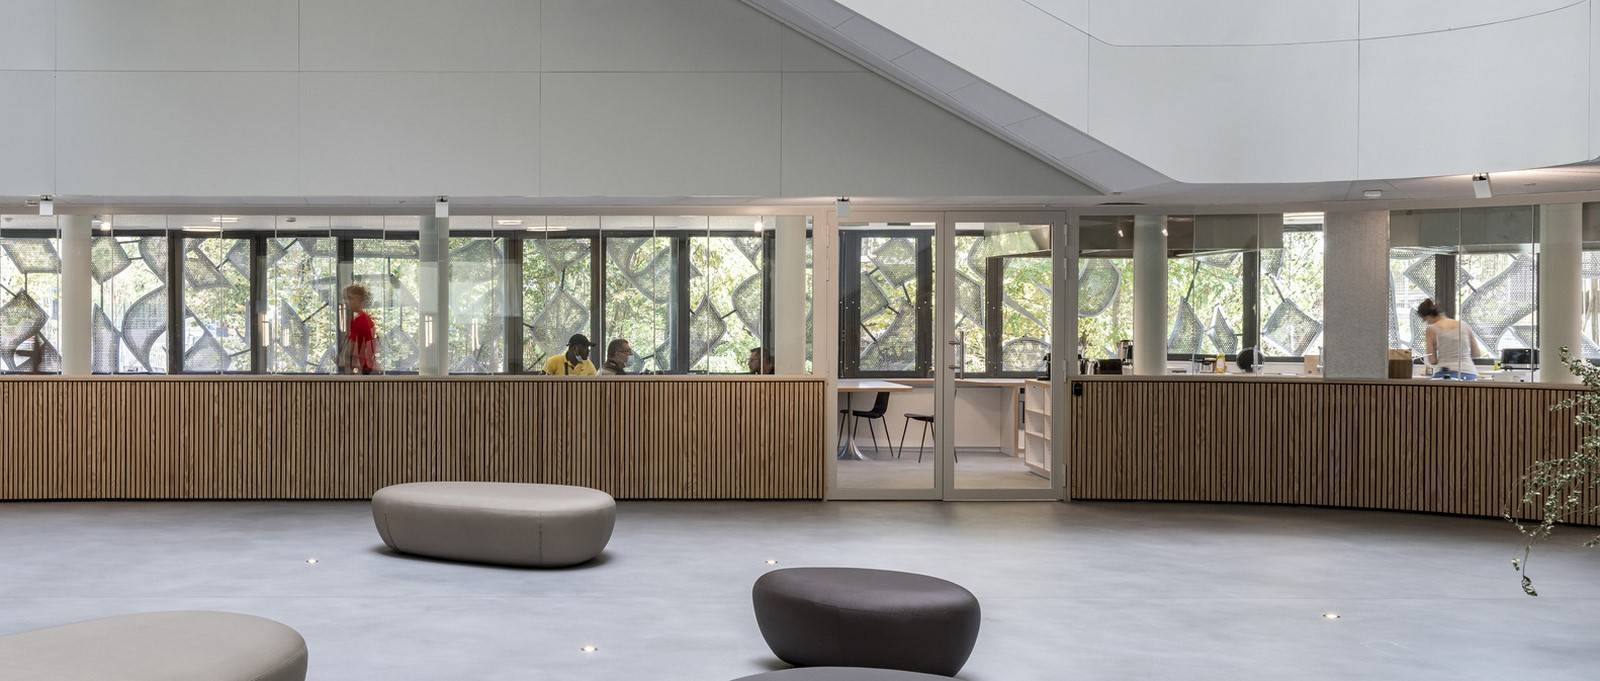 20 Examples of modern student housing - Sheet7